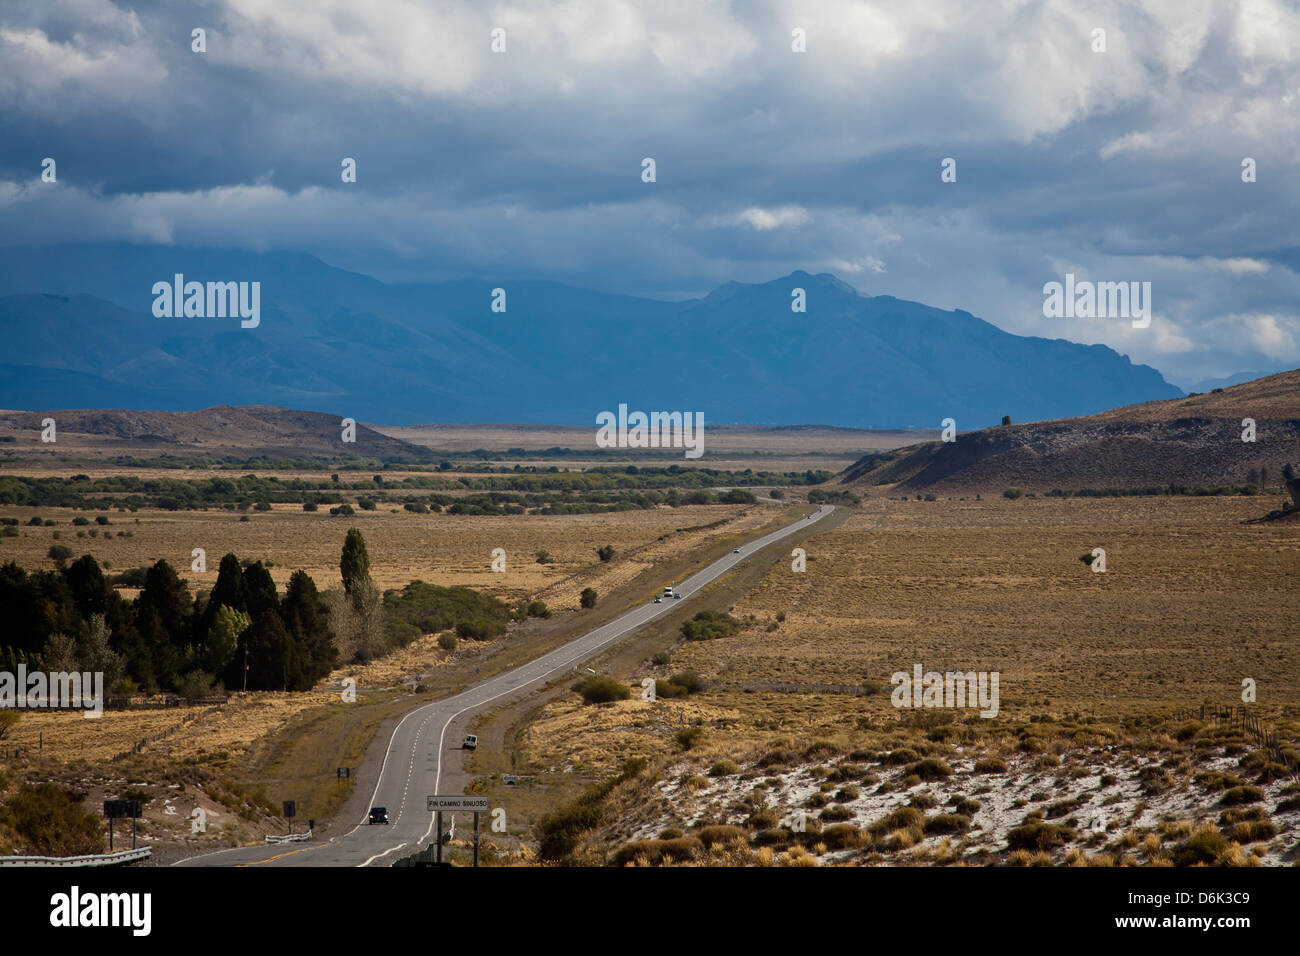 View over Ruta 40, Patagonia, Argentina, South America - Stock Image